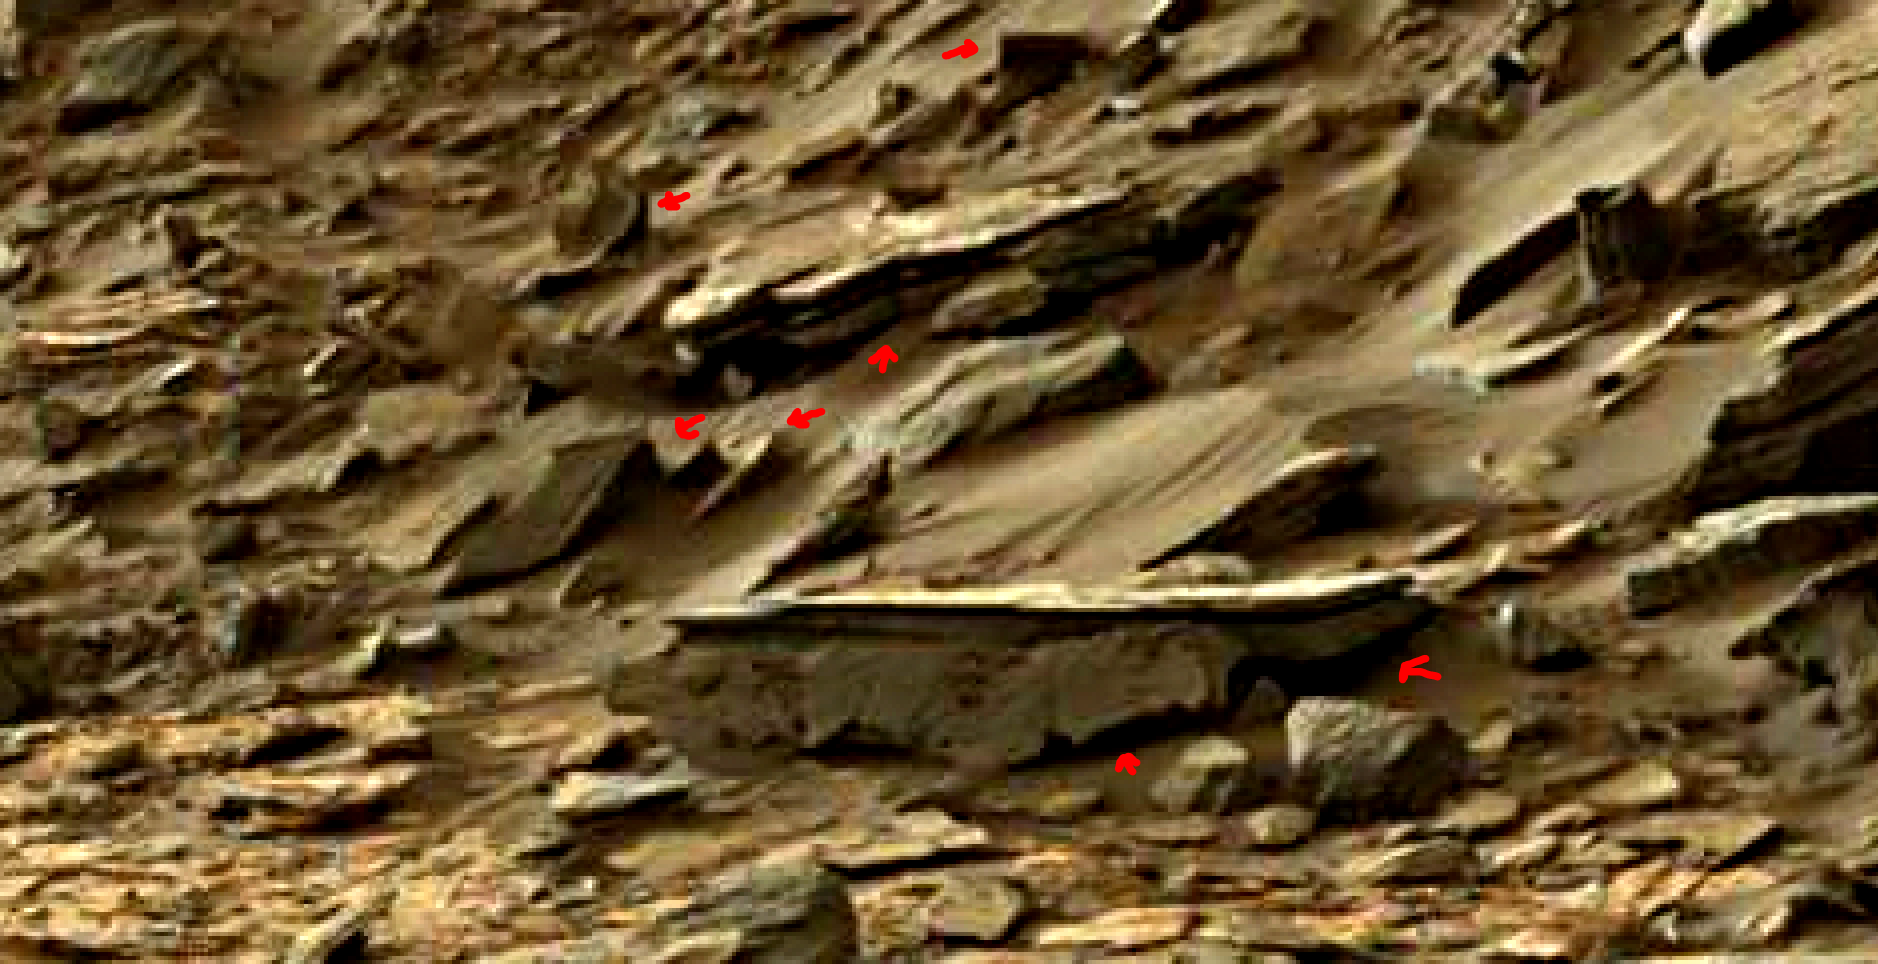 mars-sol-1454-anomaly-artifacts-31-was-life-on-mars